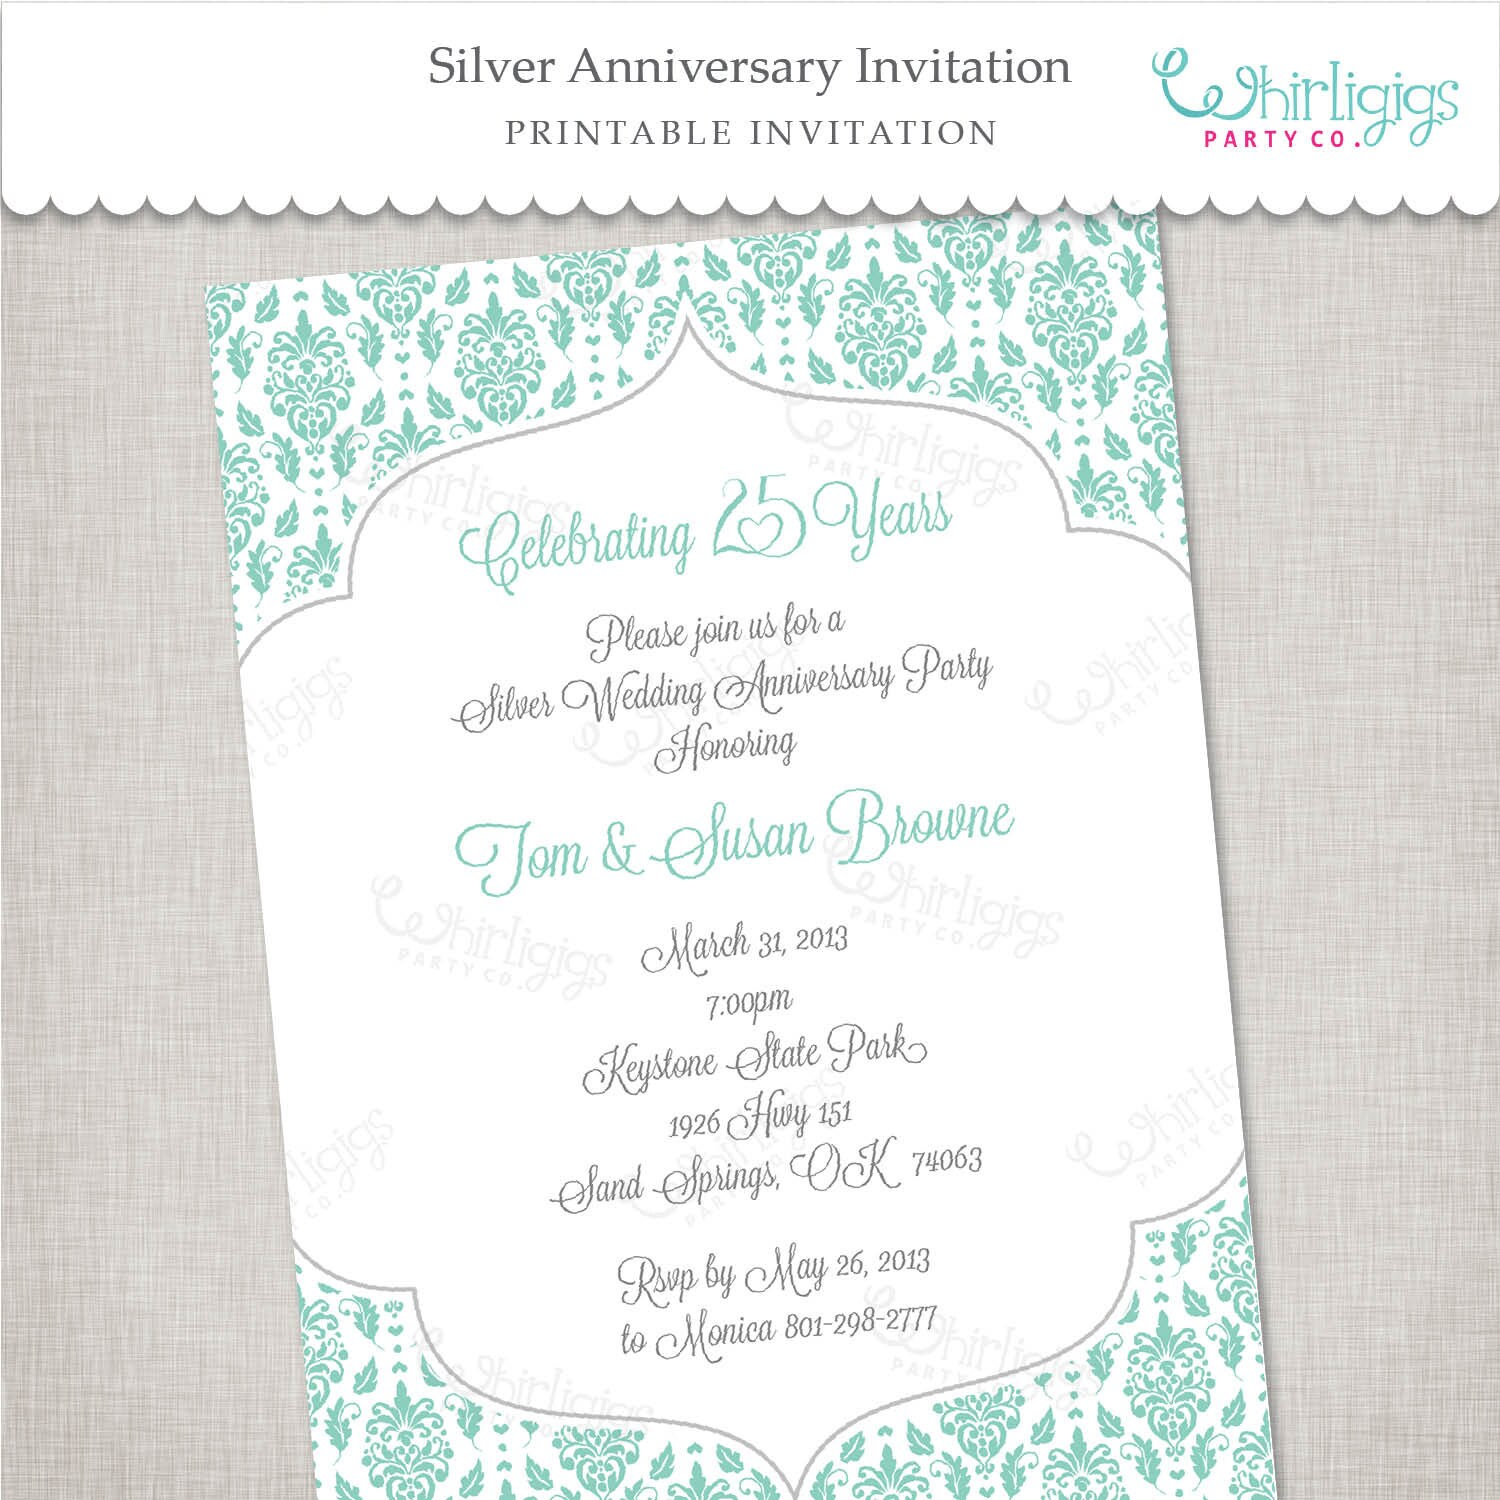 25th Silver Anniversary Printable Invitation By Whirligigspartyco